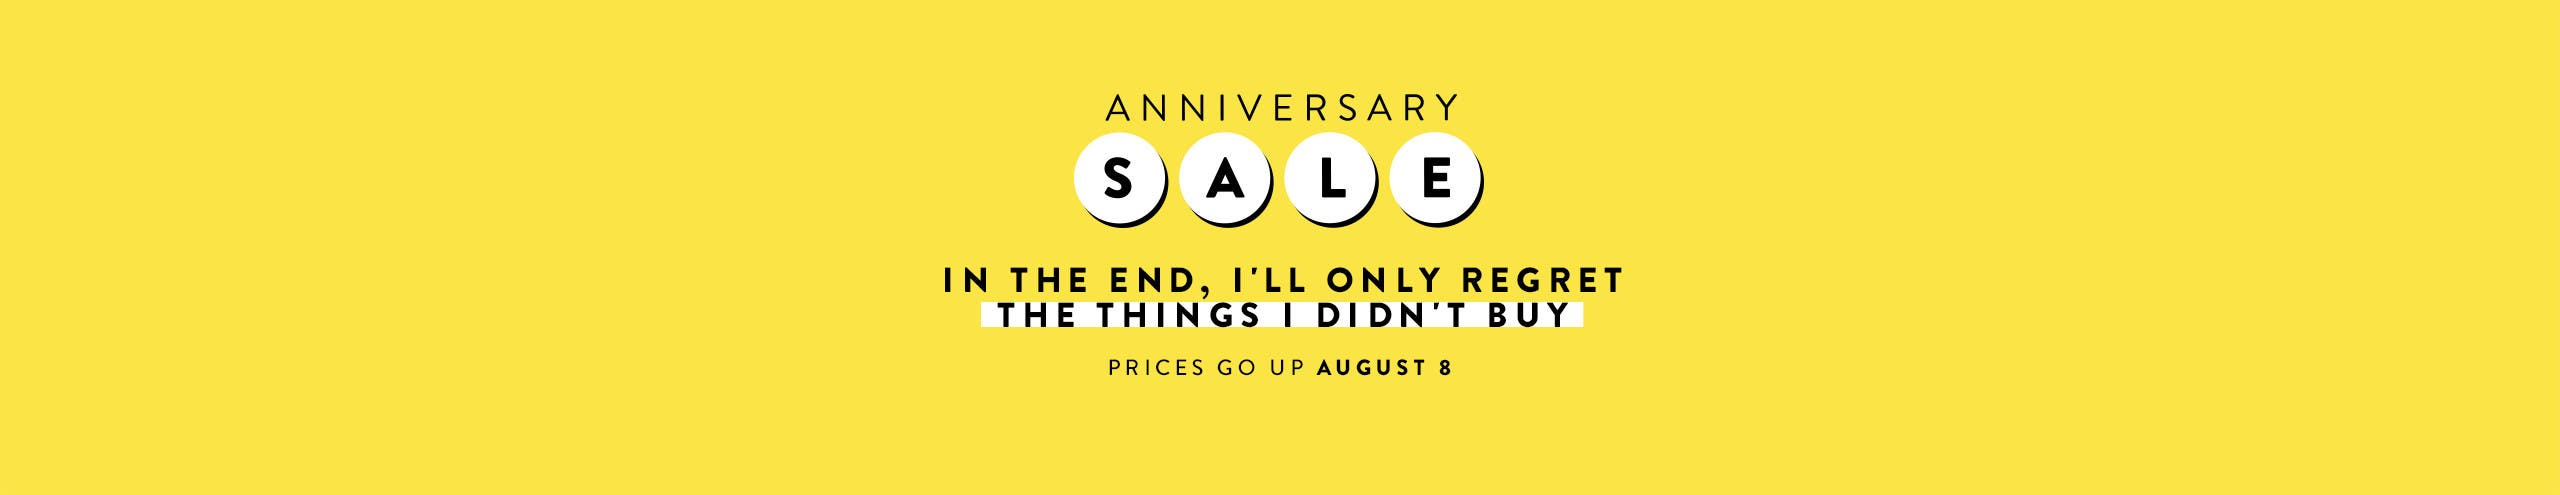 Anniversary Sale: In the end, I'll only regret the things I didn't buy. Prices go up August 8.